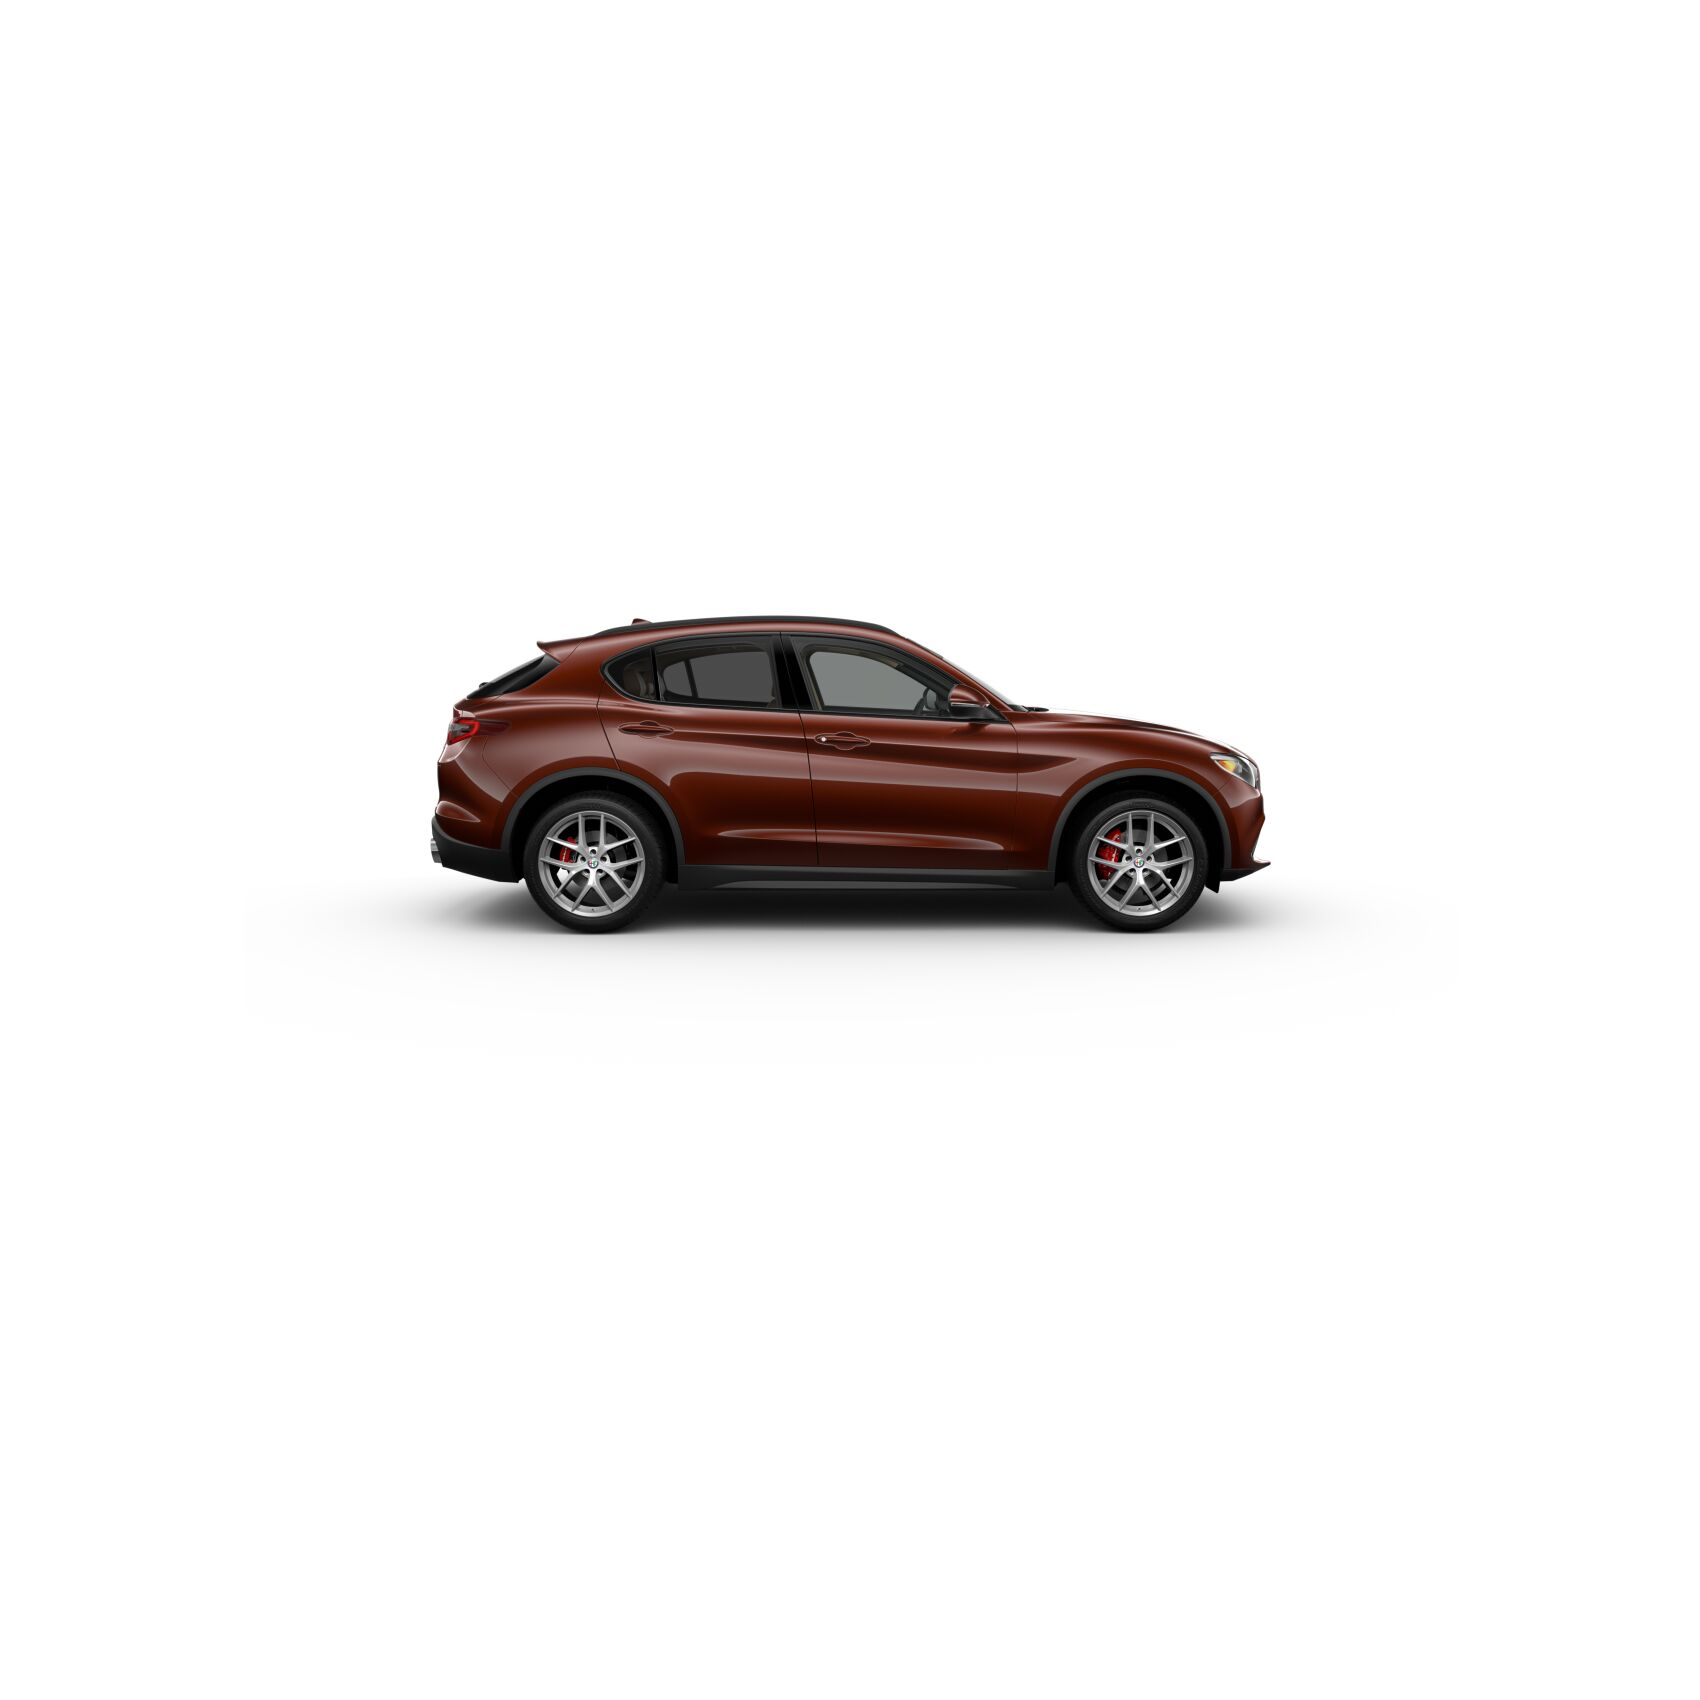 2019 Alfa Romeo Stelvio in Basalto Brown